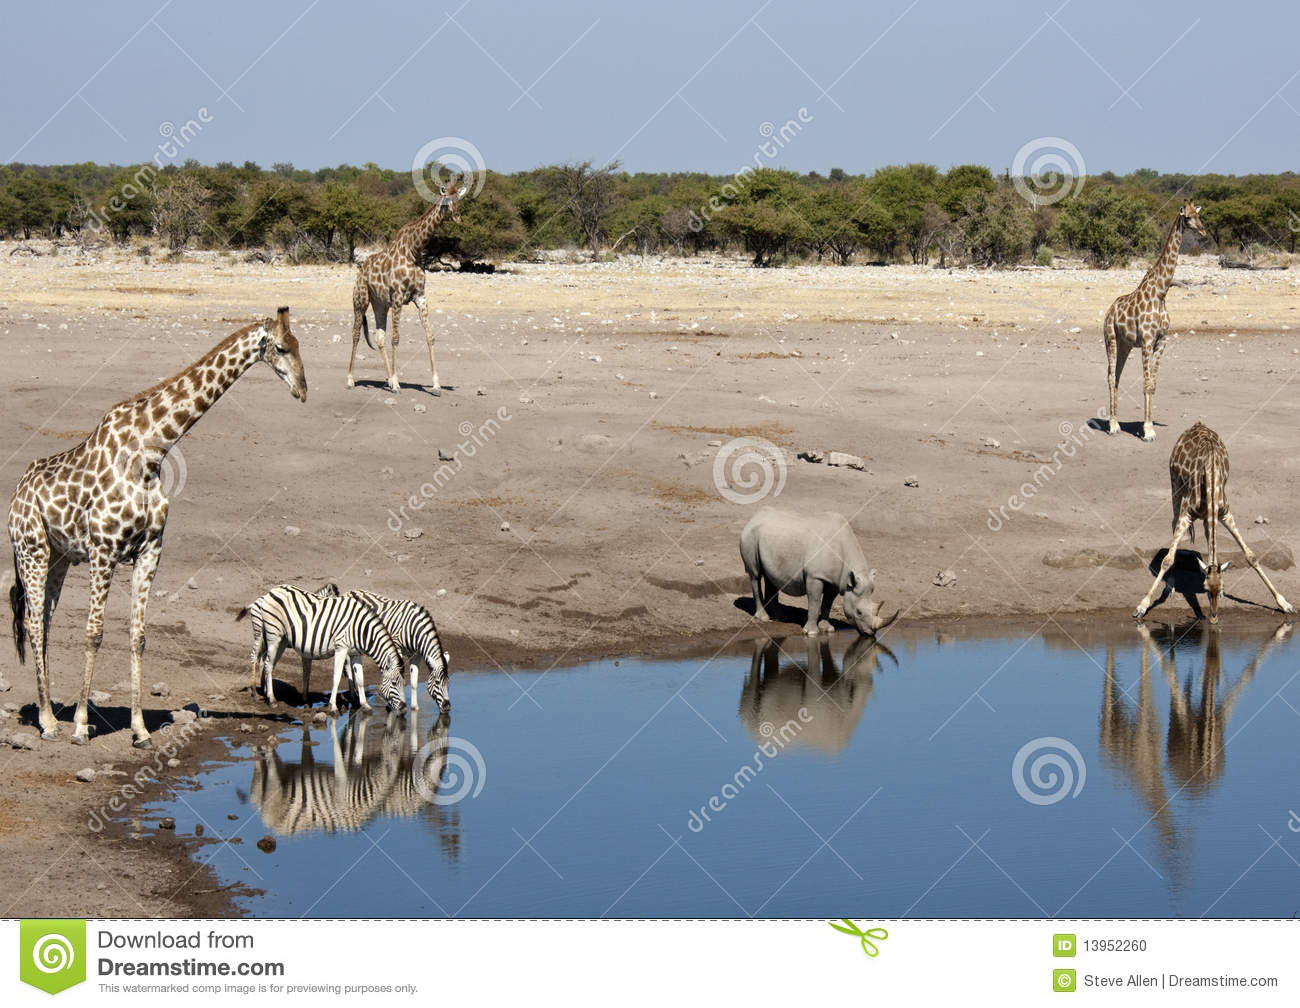 African wildlife at a waterhole in Namibia